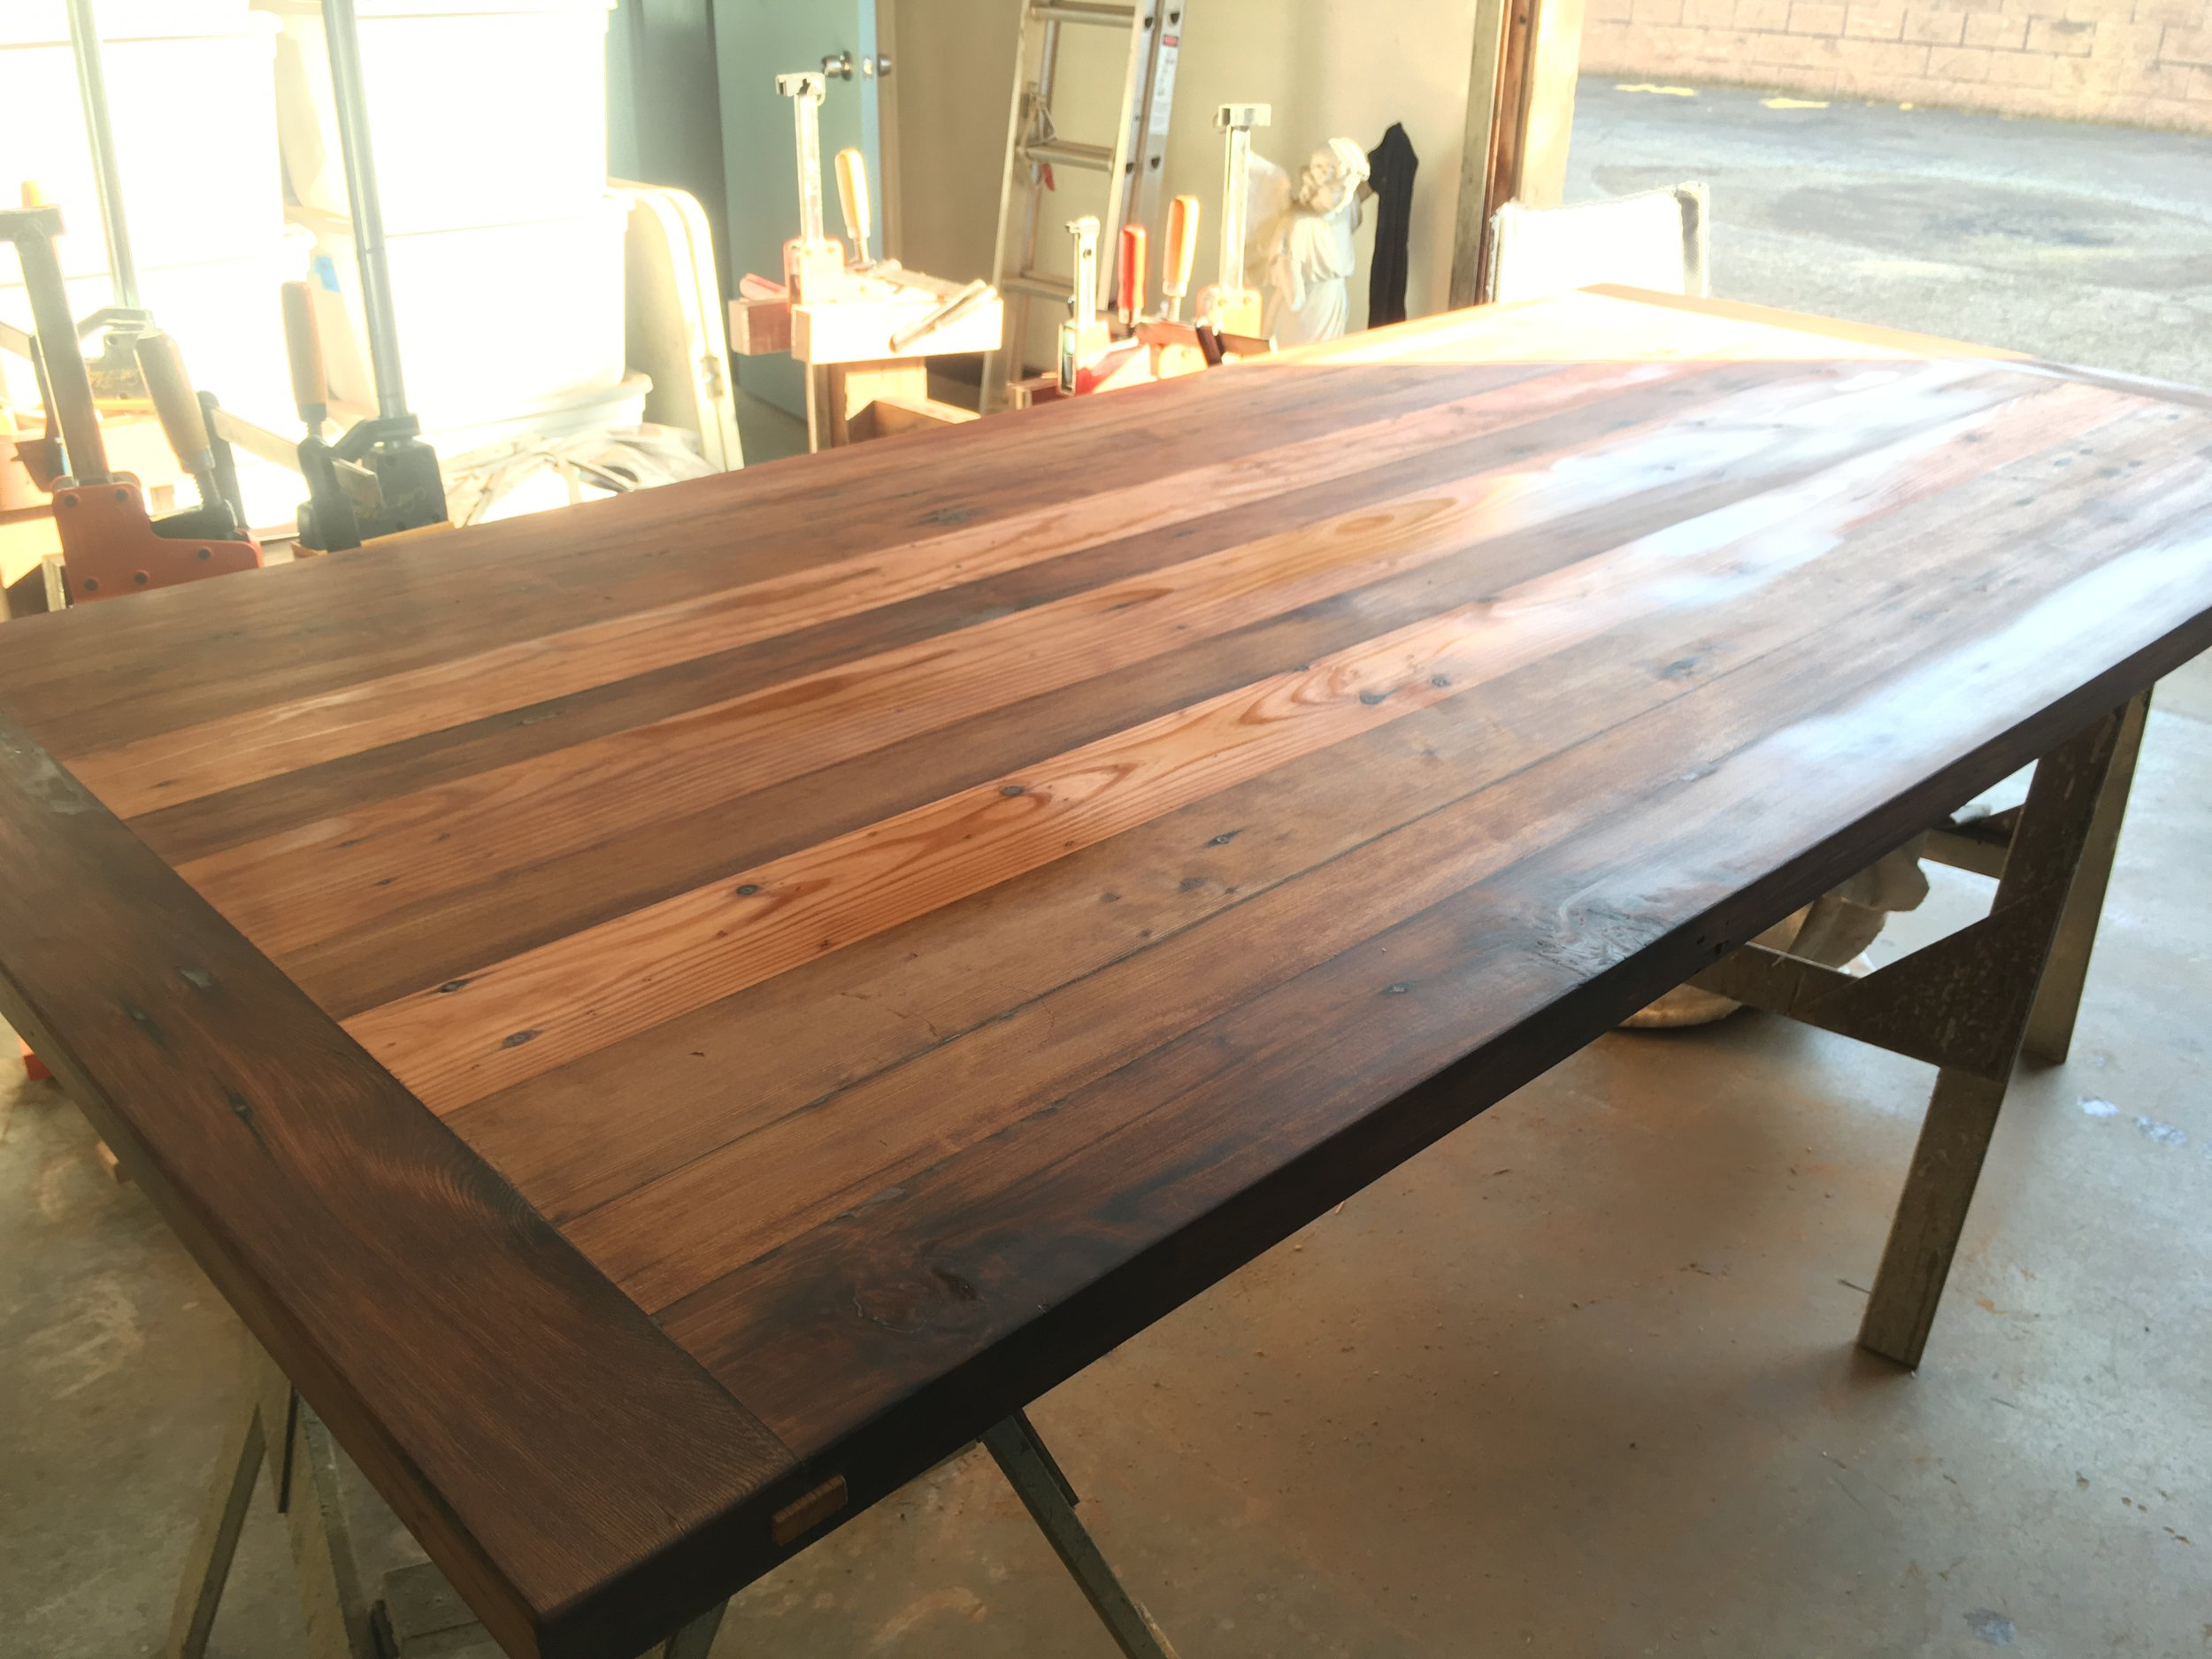 Finished tabletop